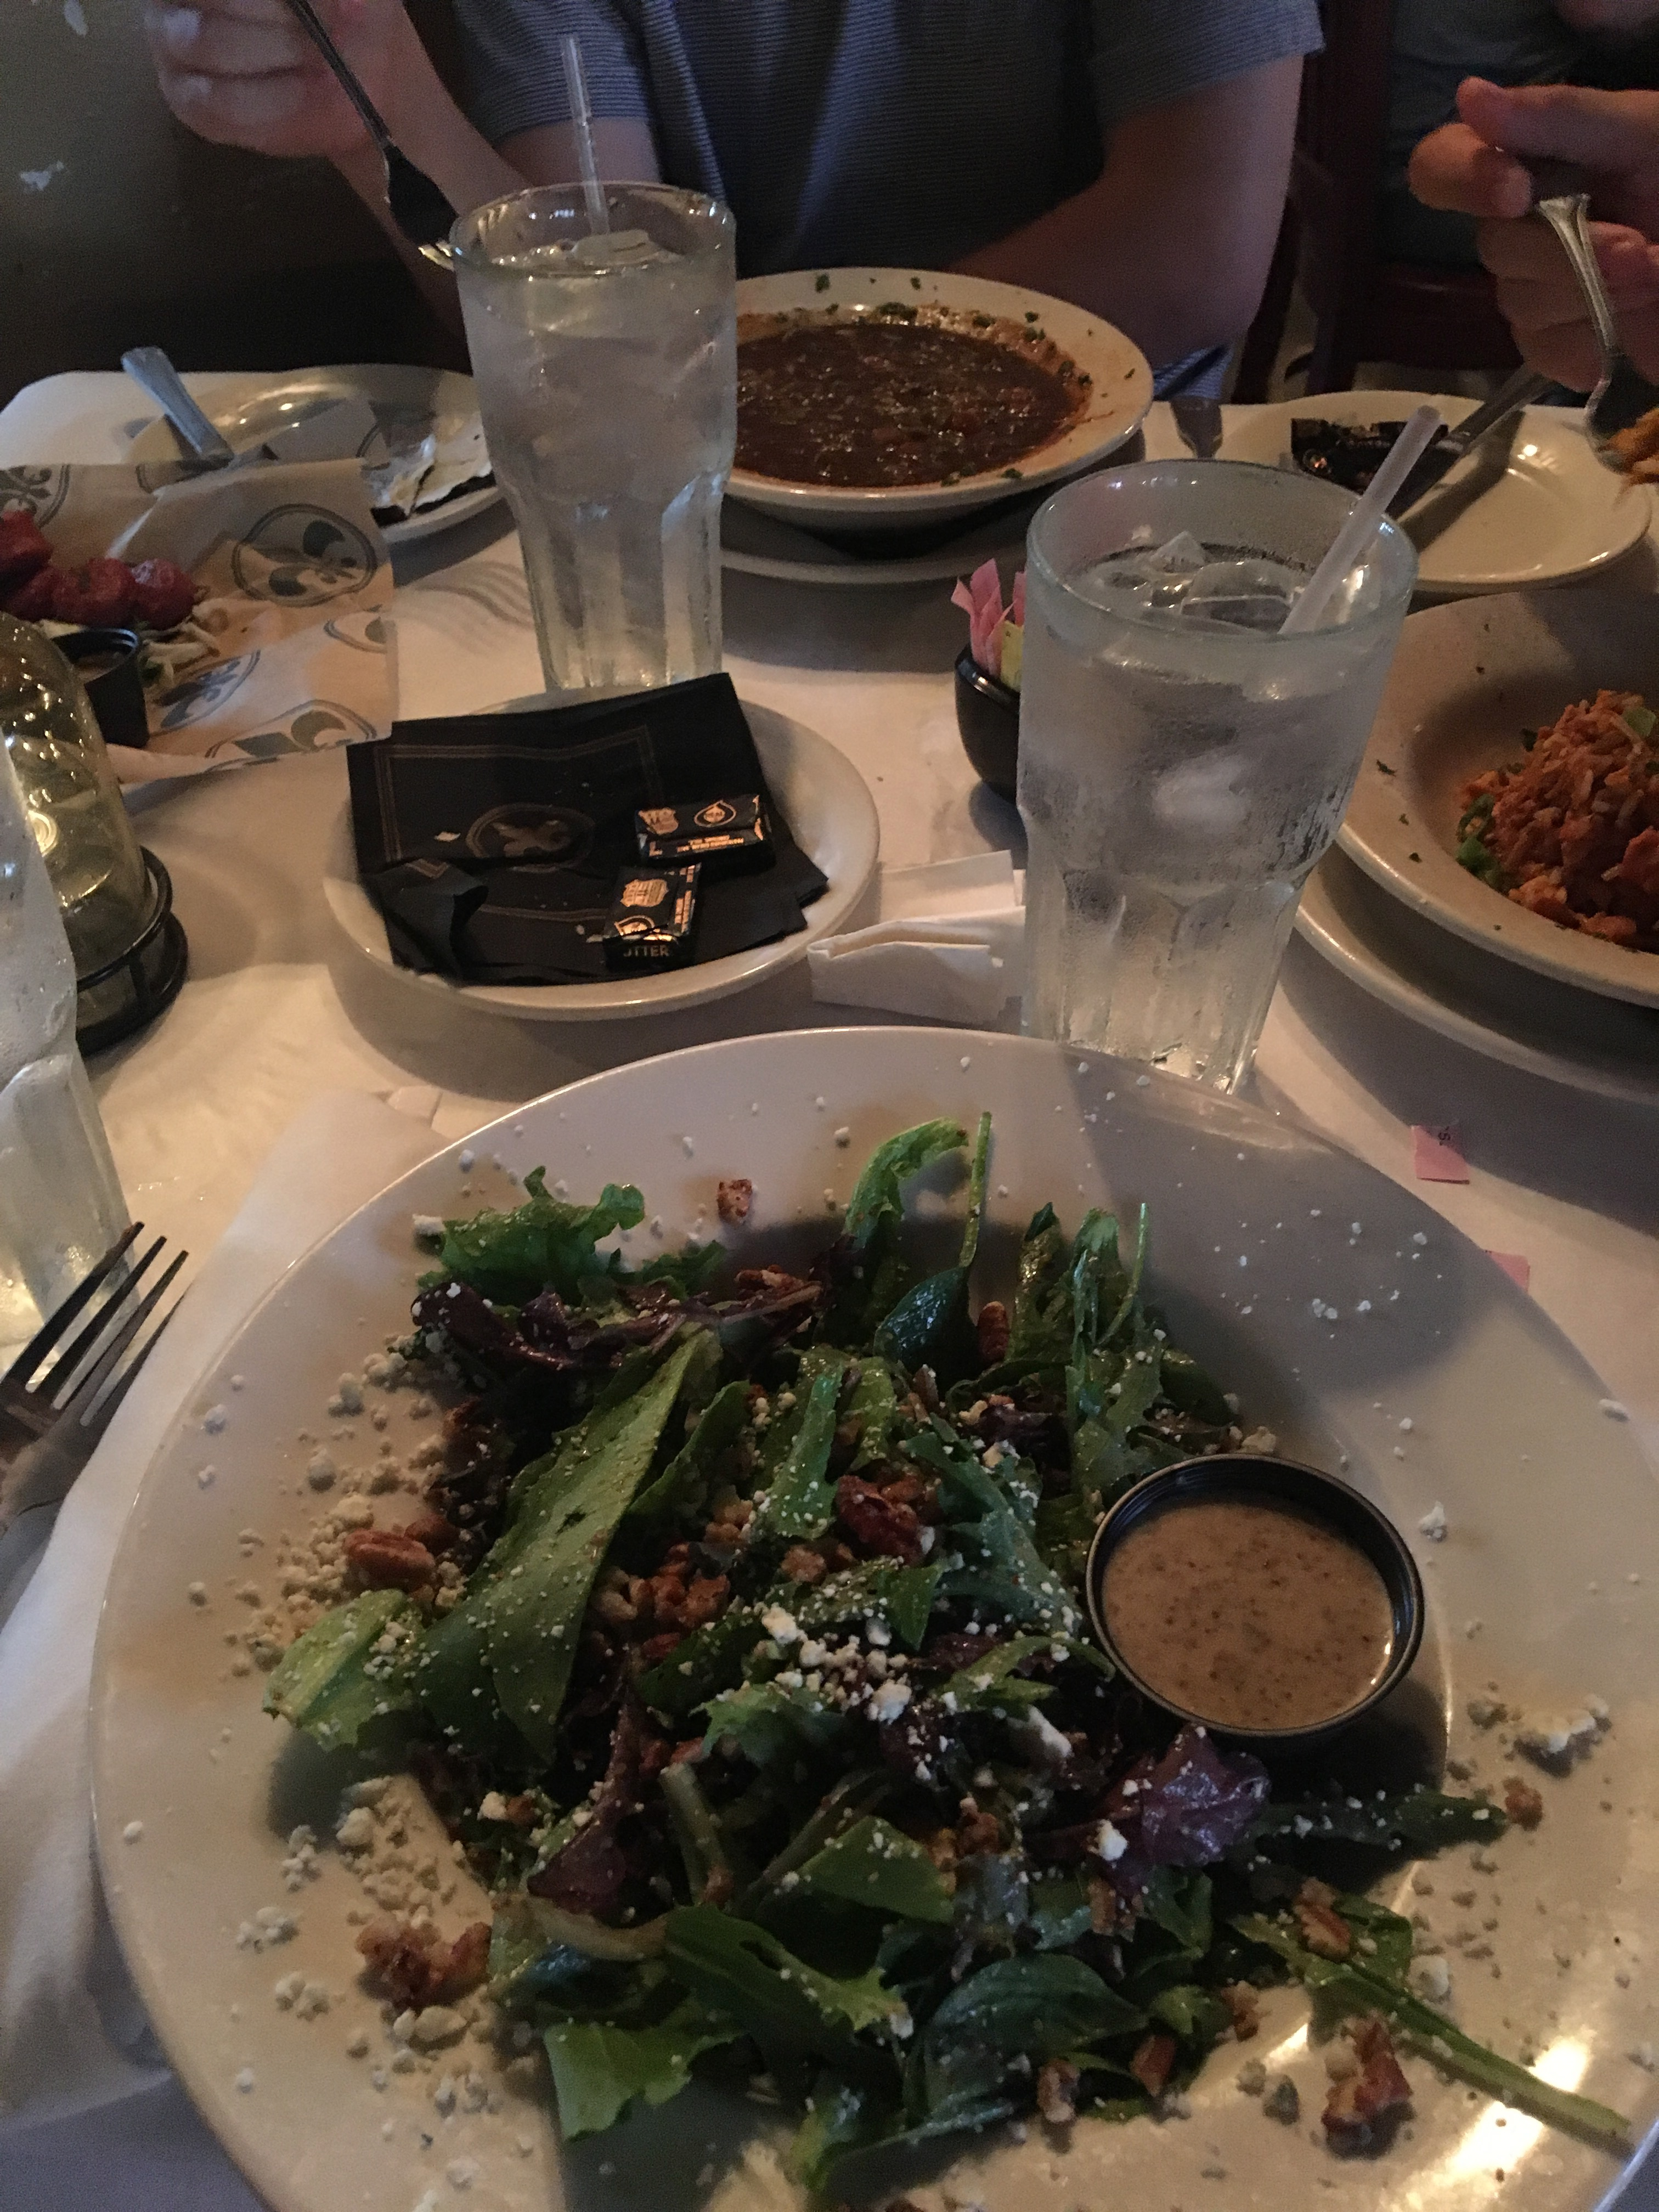 A photo of our feast at the New Orleans Creole Cookery.